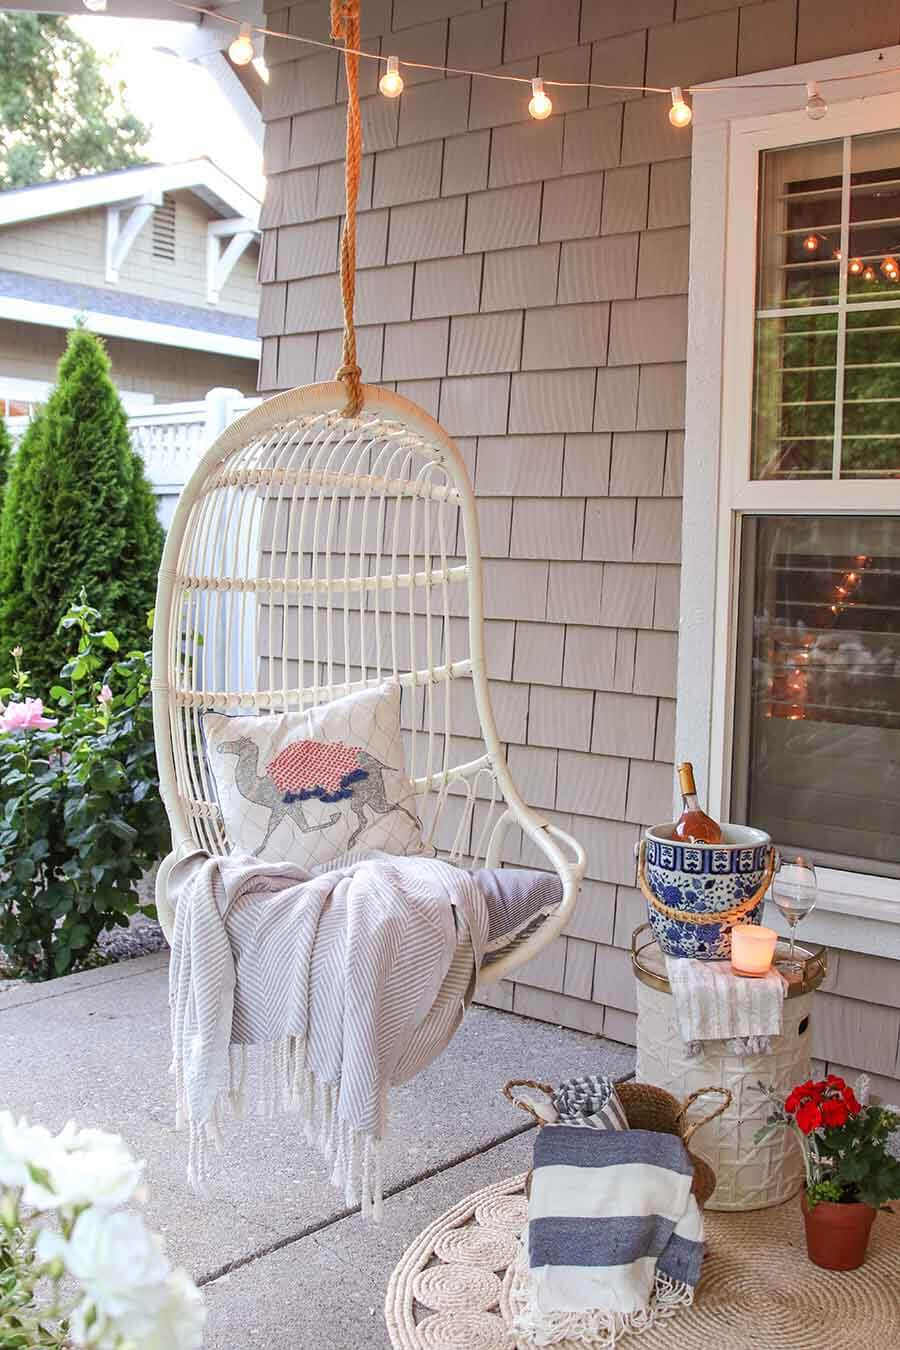 Soft Hanging Outdoor Hammock Chair